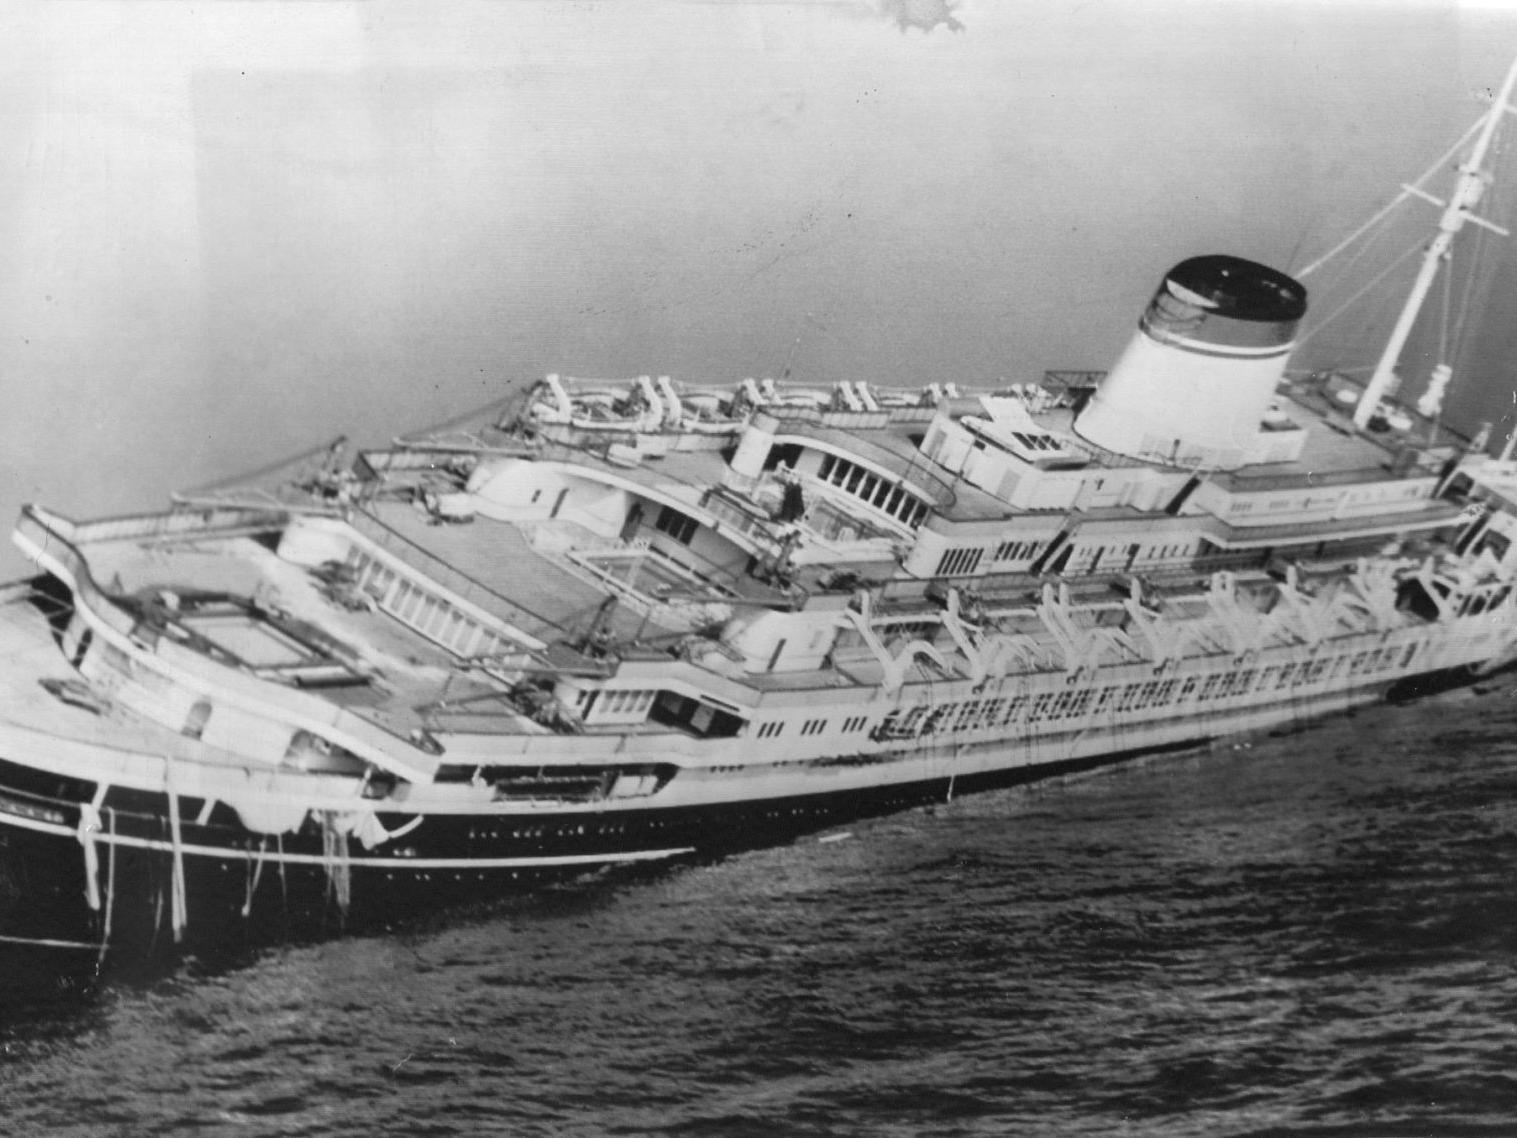 Spotlight: St. Charles man diving Andrea Doria shipwreck on disaster anniversary